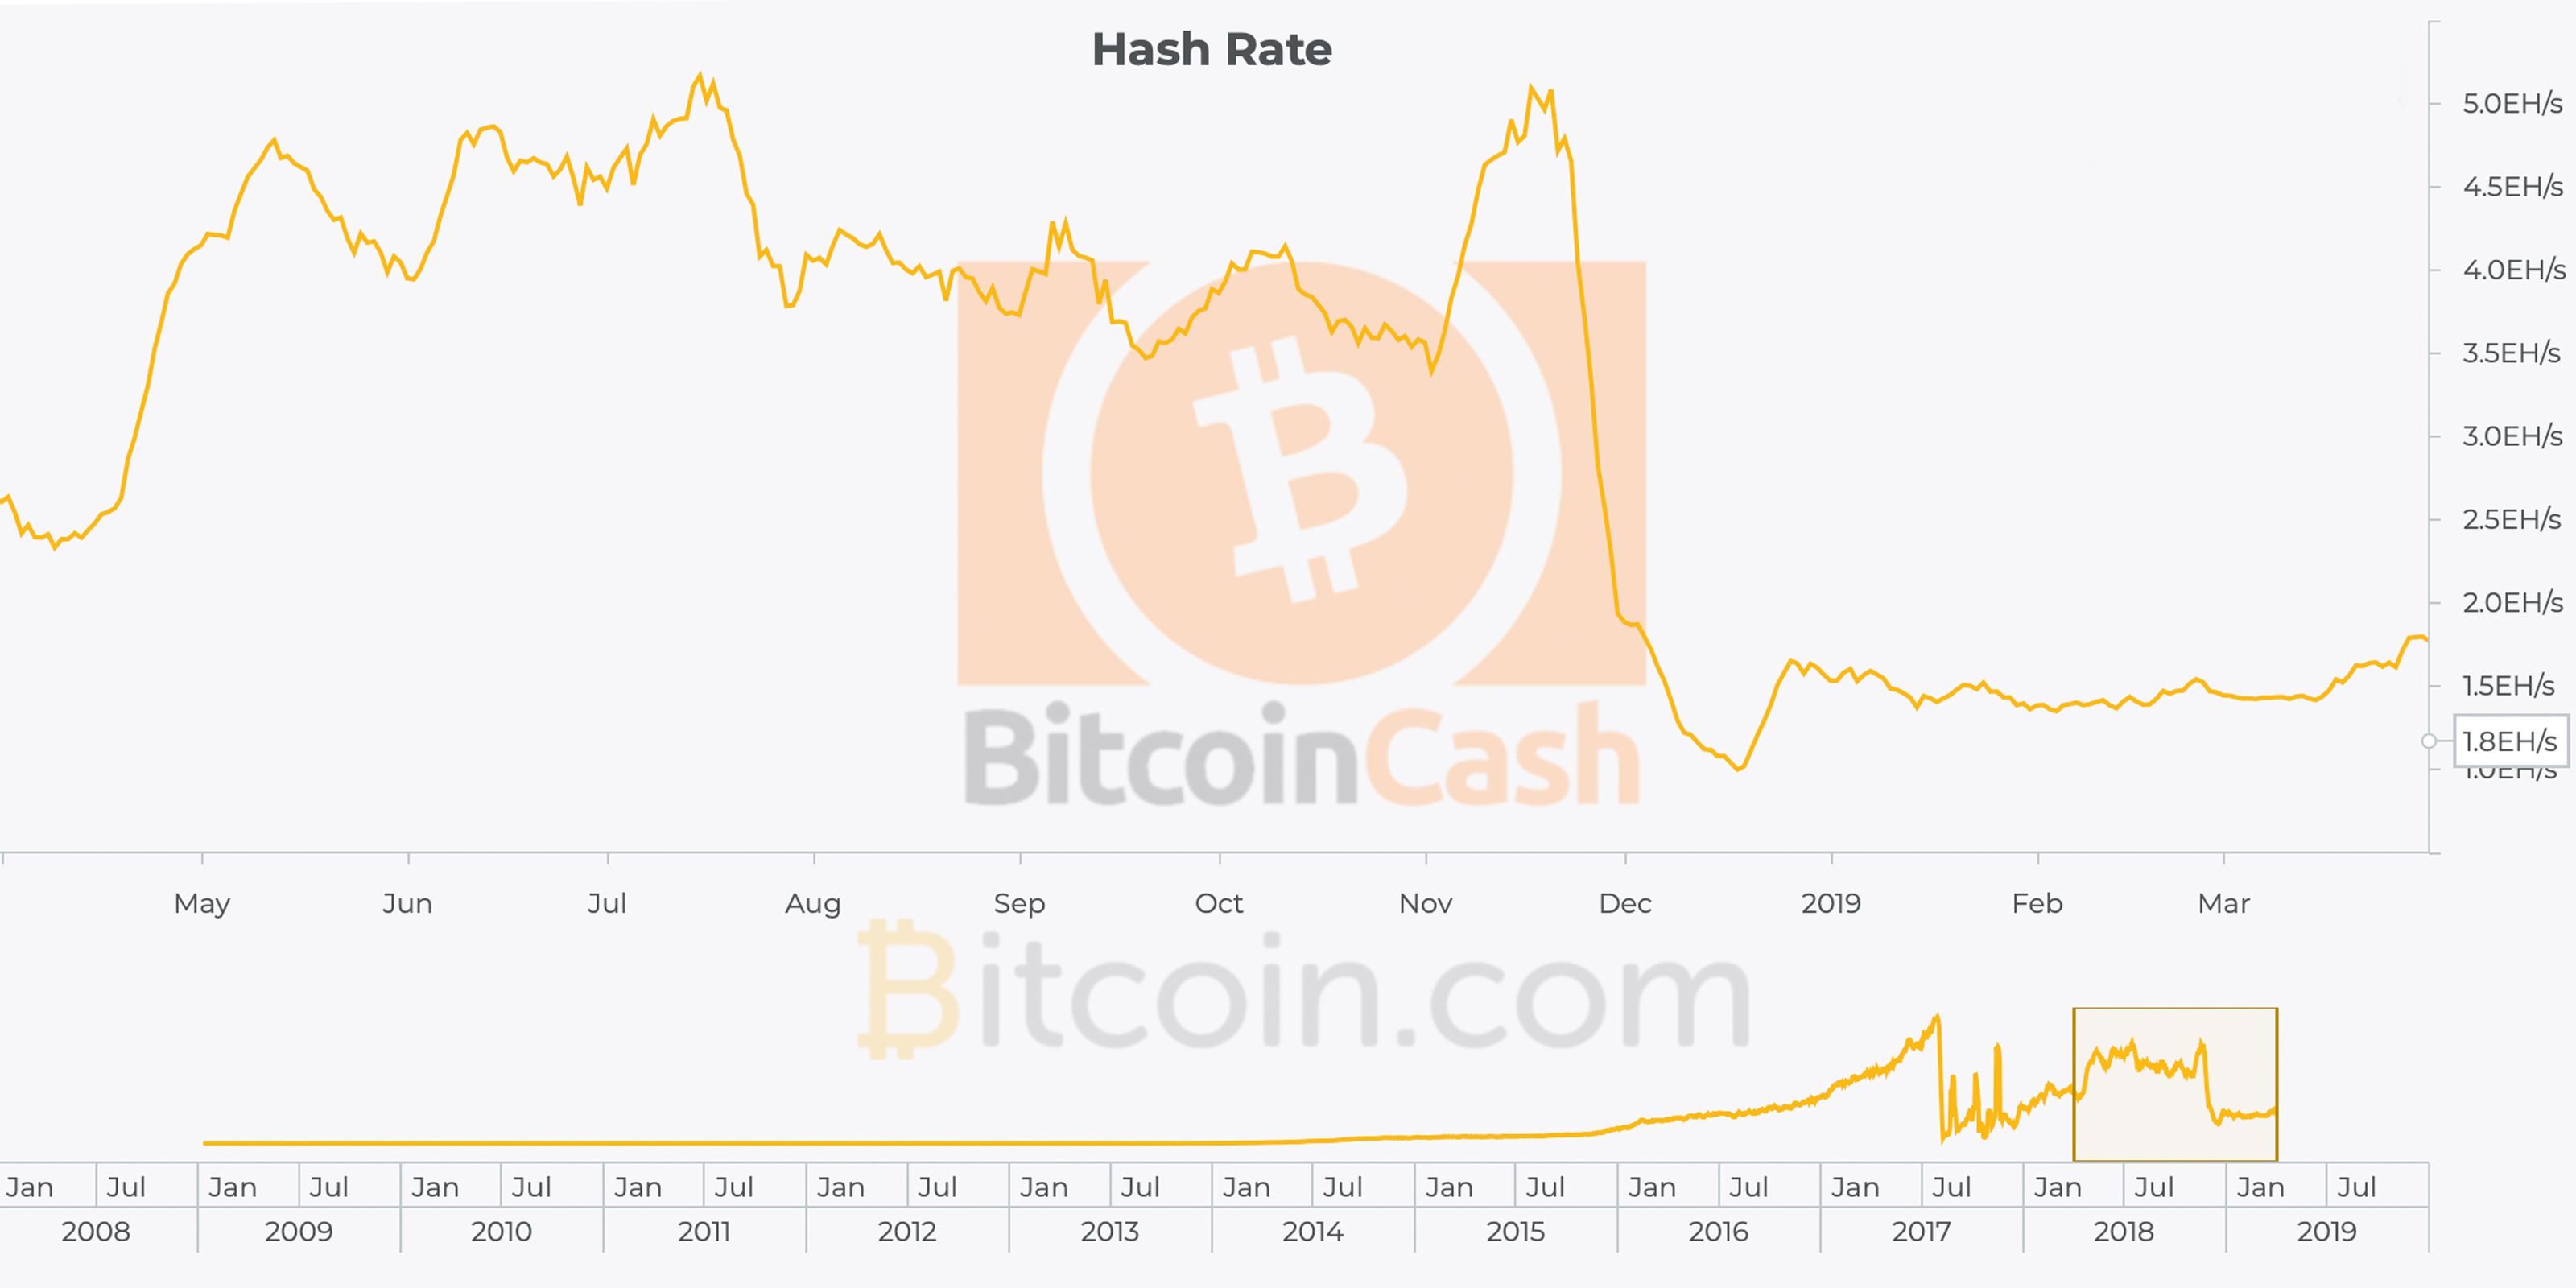 Bitcoin Cash Markets and Network Gather Strong Momentum in Q1